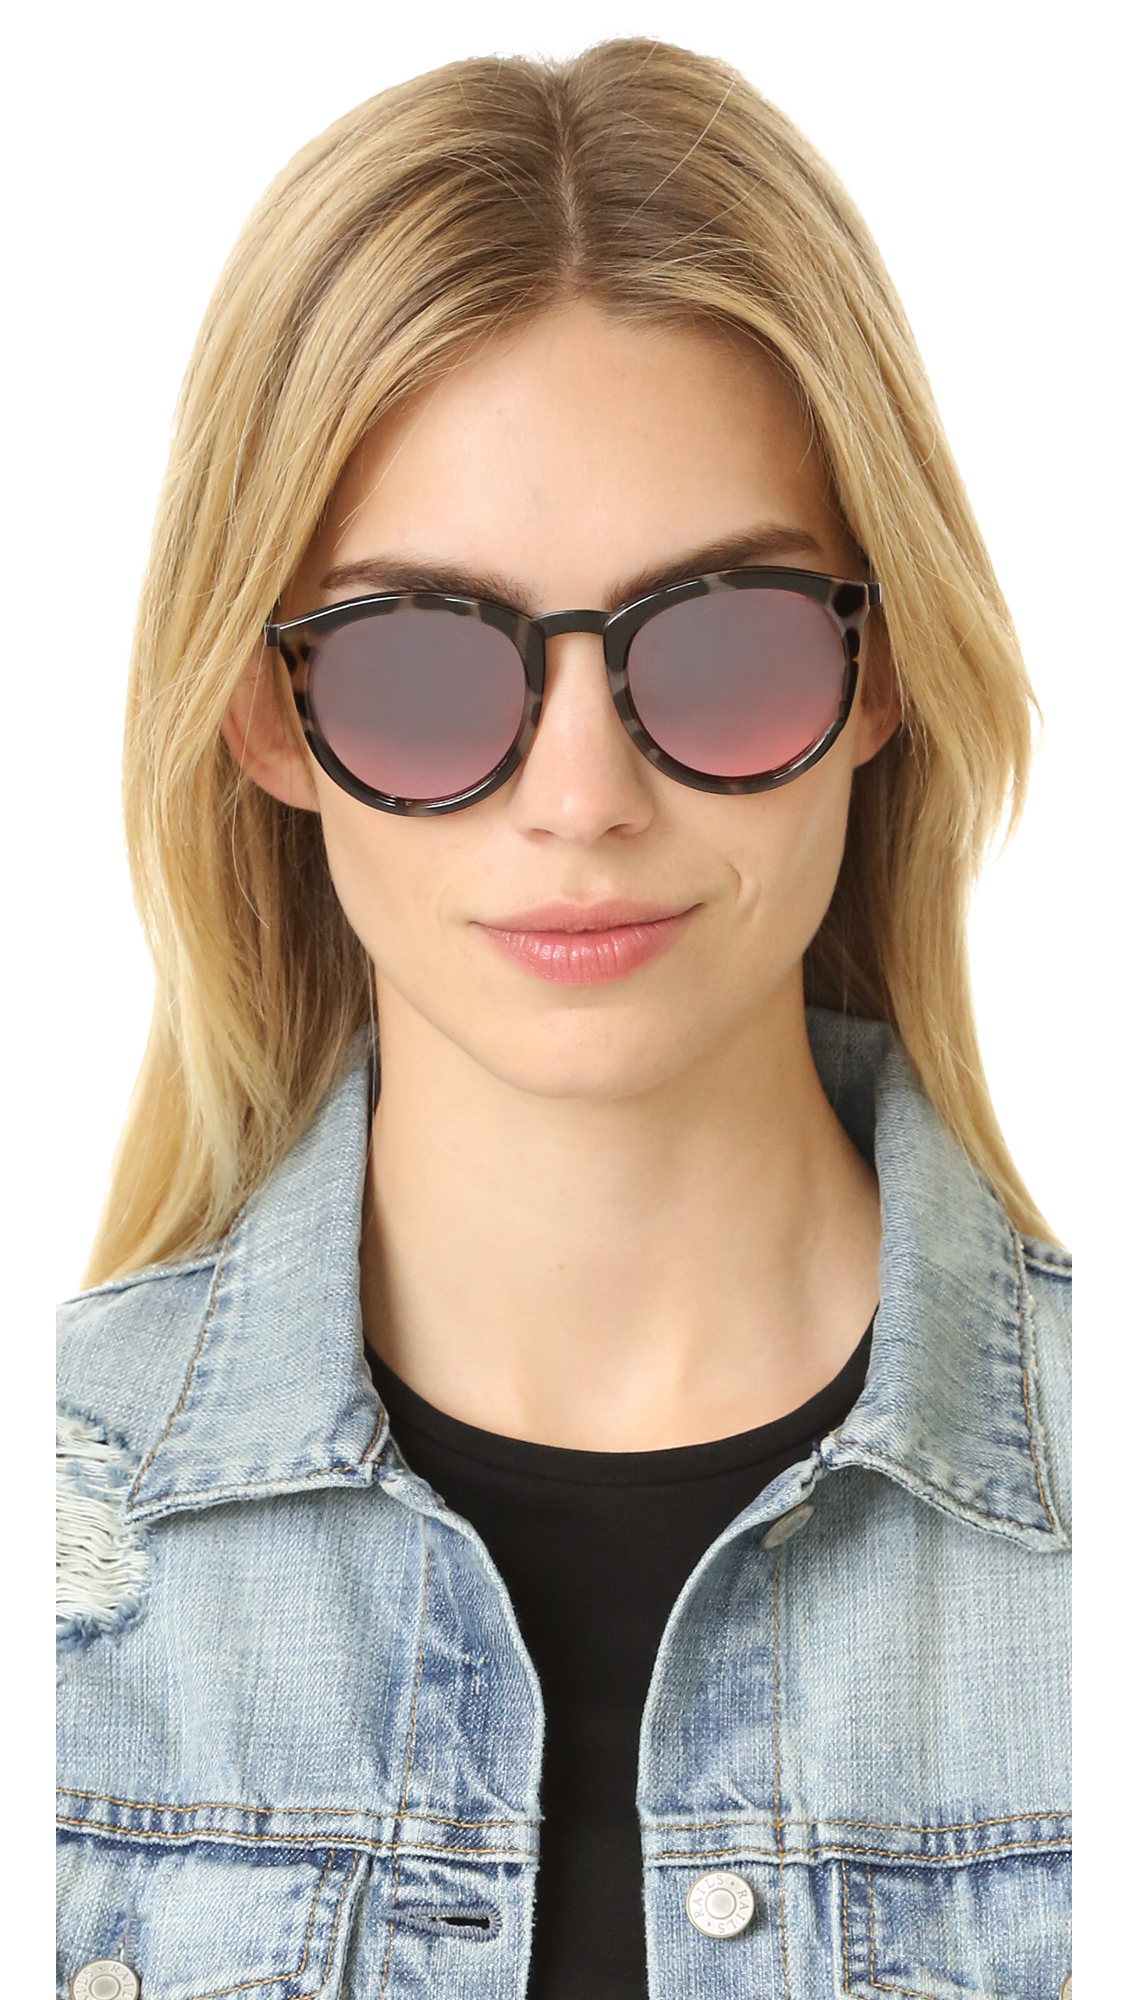 a2d2919c8e9 Le Specs No Smirking Sunglasses